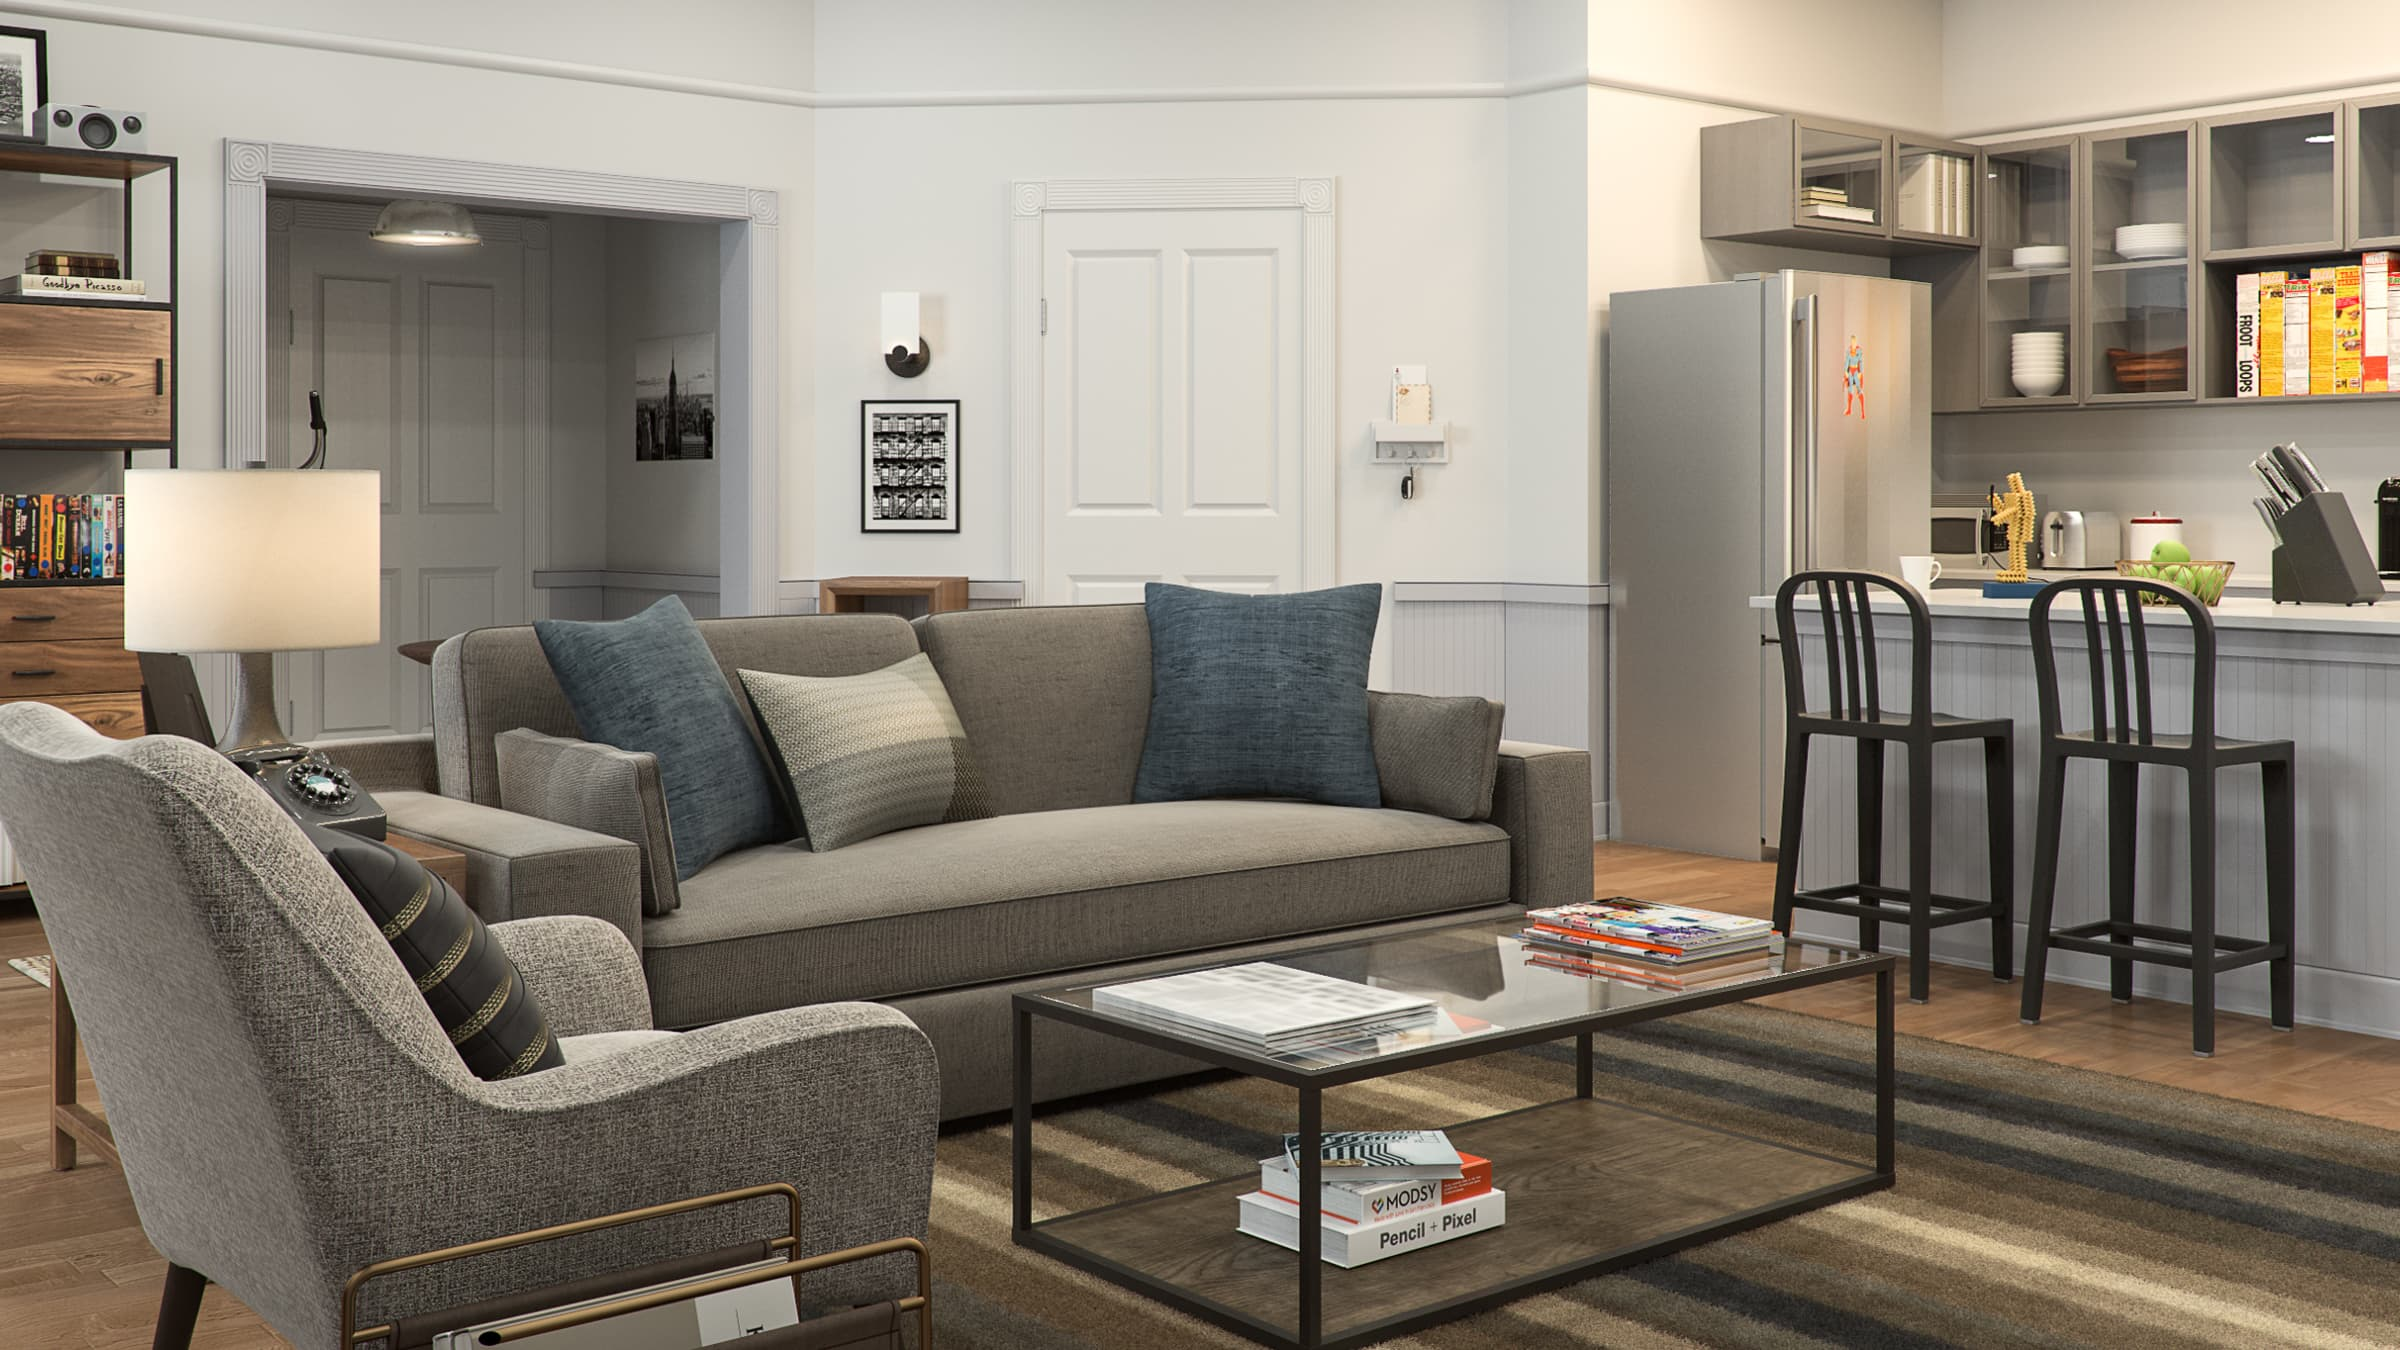 Heres what seinfelds apartment would look like in